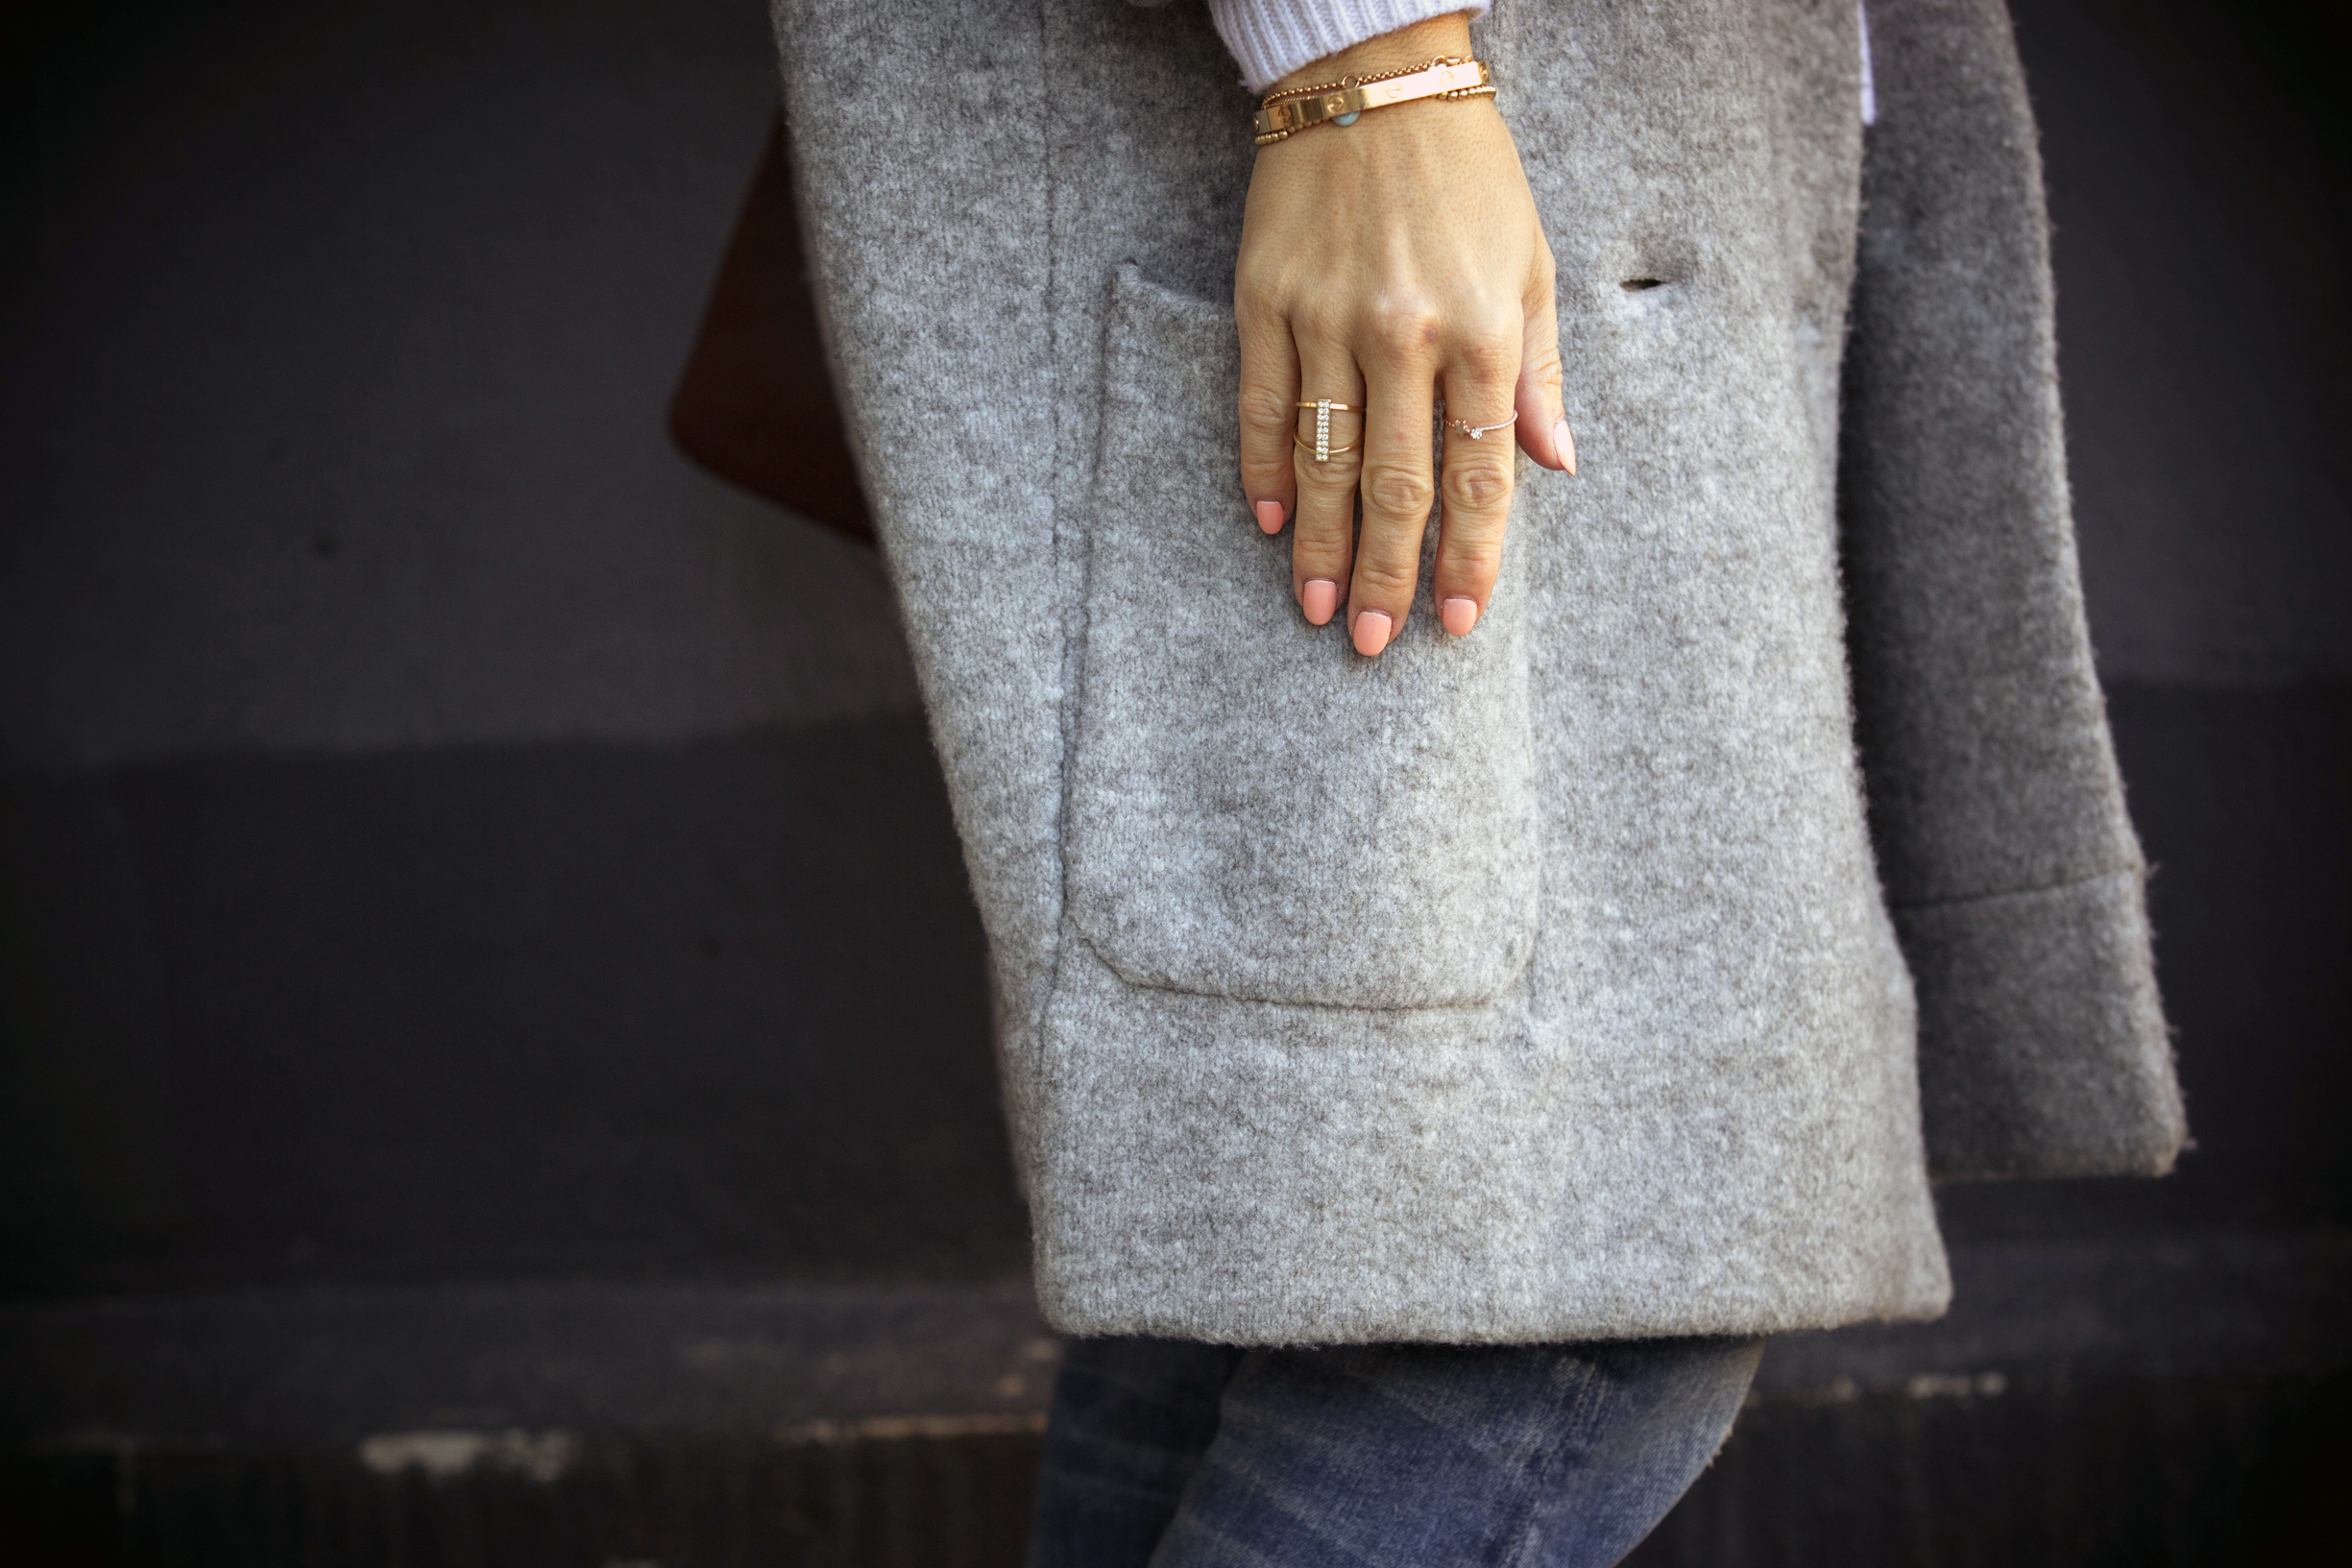 soyer coat from Curve boutique on mademoiselle jules fashion blog lifestyle mlle jules